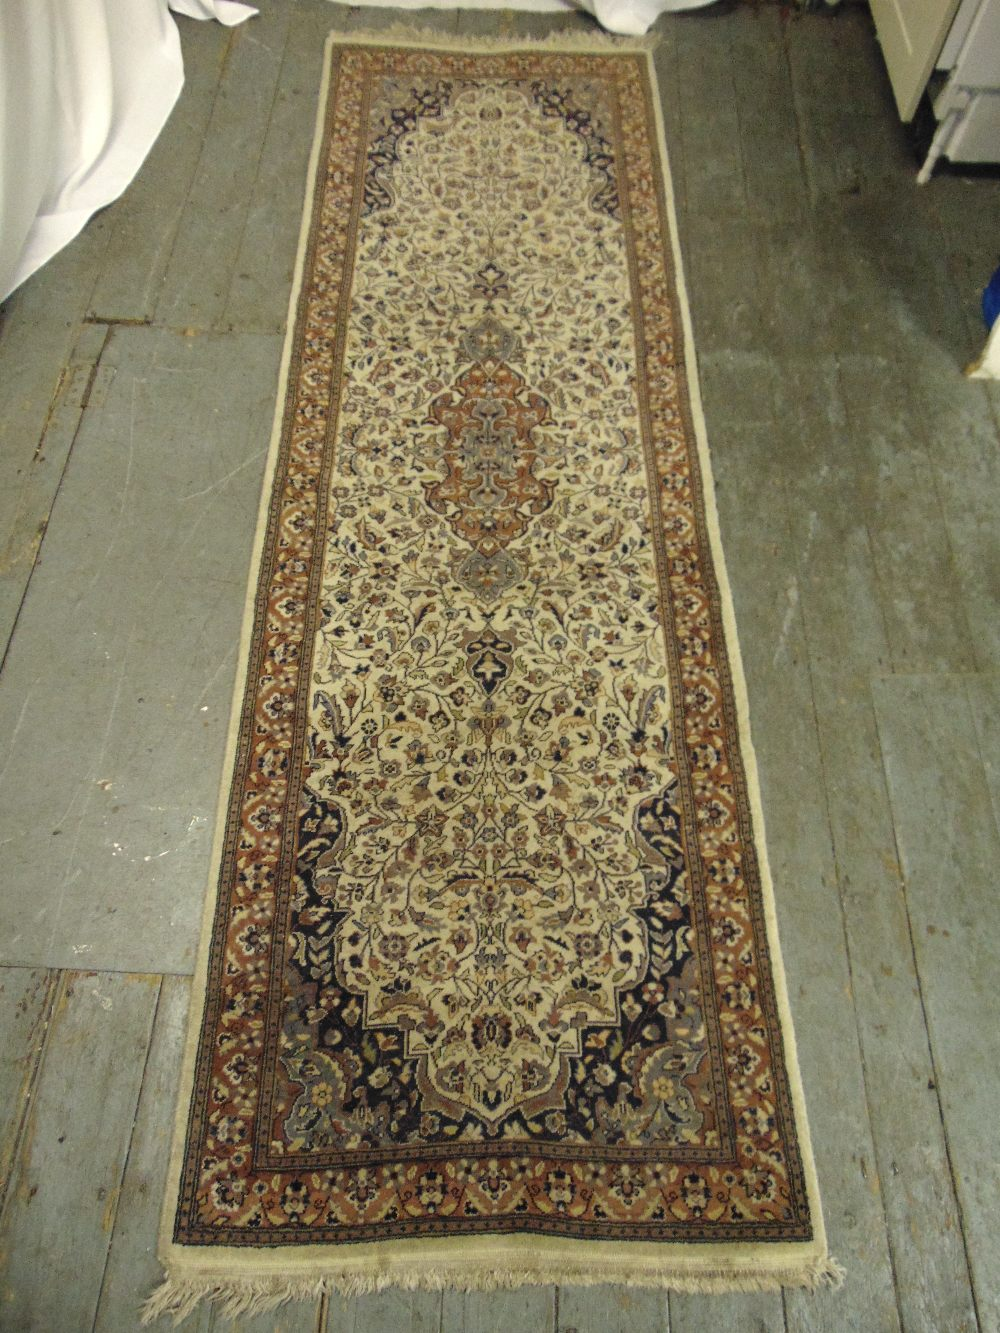 Lot 36 - A Persian wool runner brown ground and tan border with repeating floral pattern, 250 x 79cm